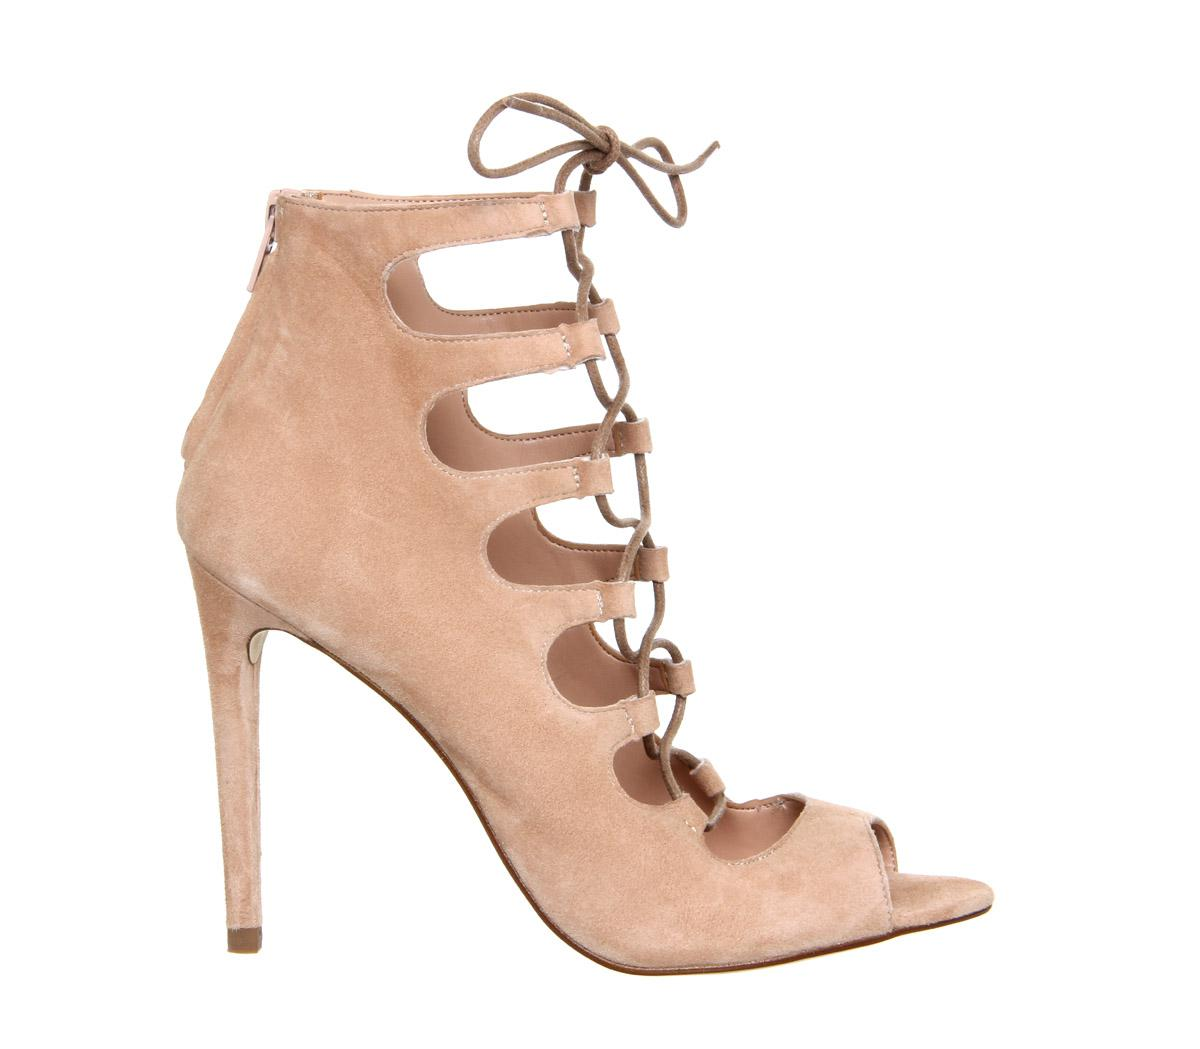 36c17cb25b91 Gallery. Women s Ankle Strap Sandals Women s Lace Up High Heels ...